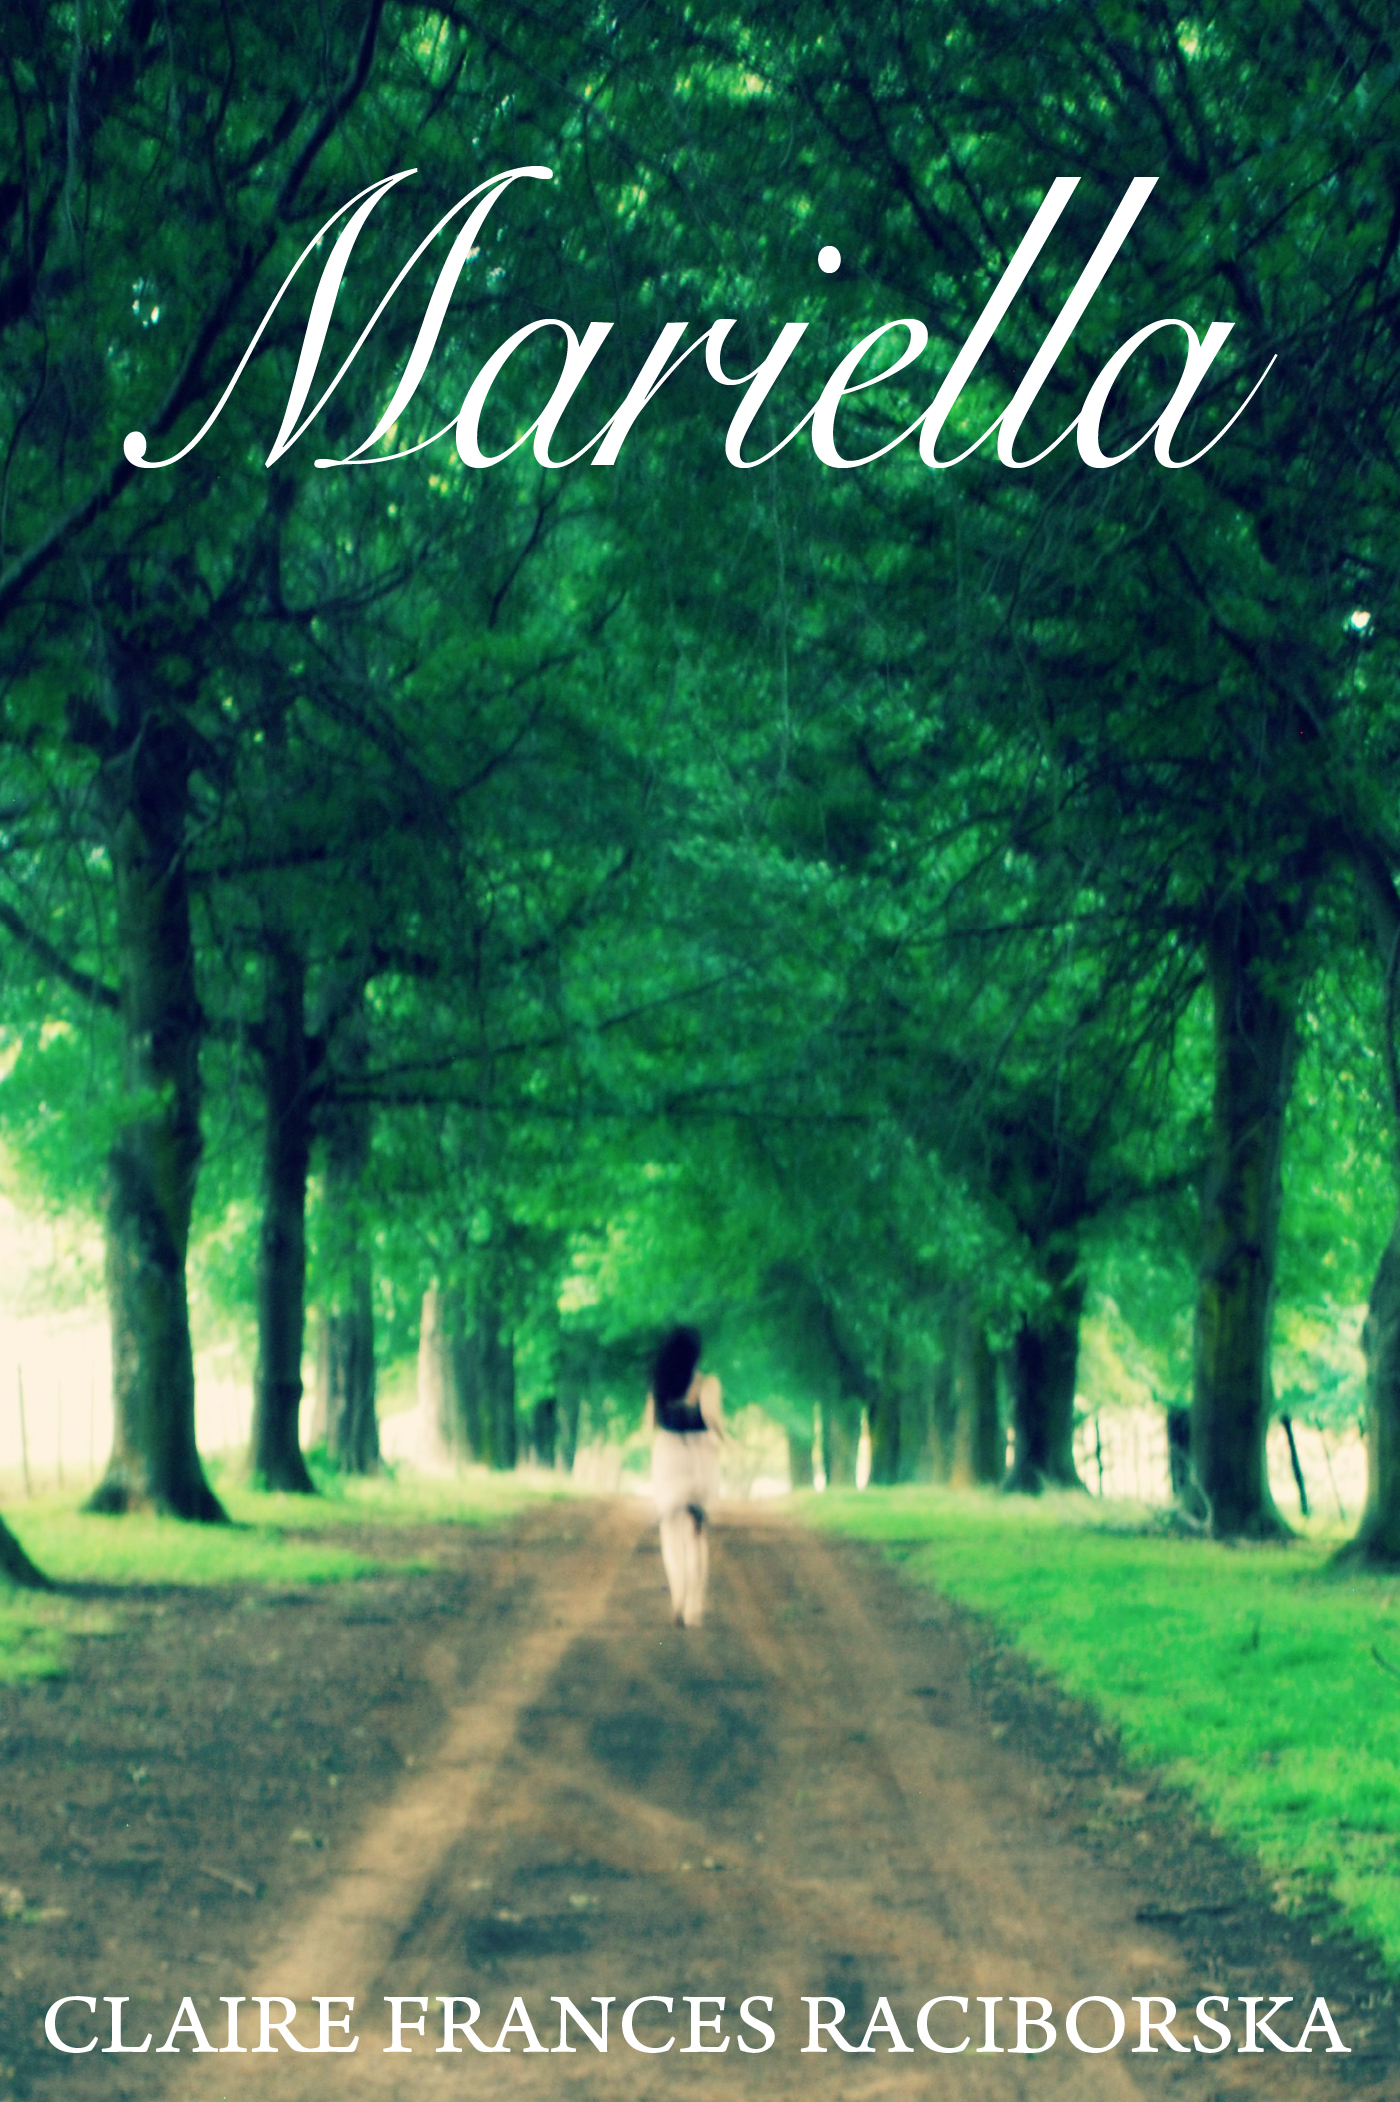 Mariella $2.99 A fictional look at the effects of unschooling versus control